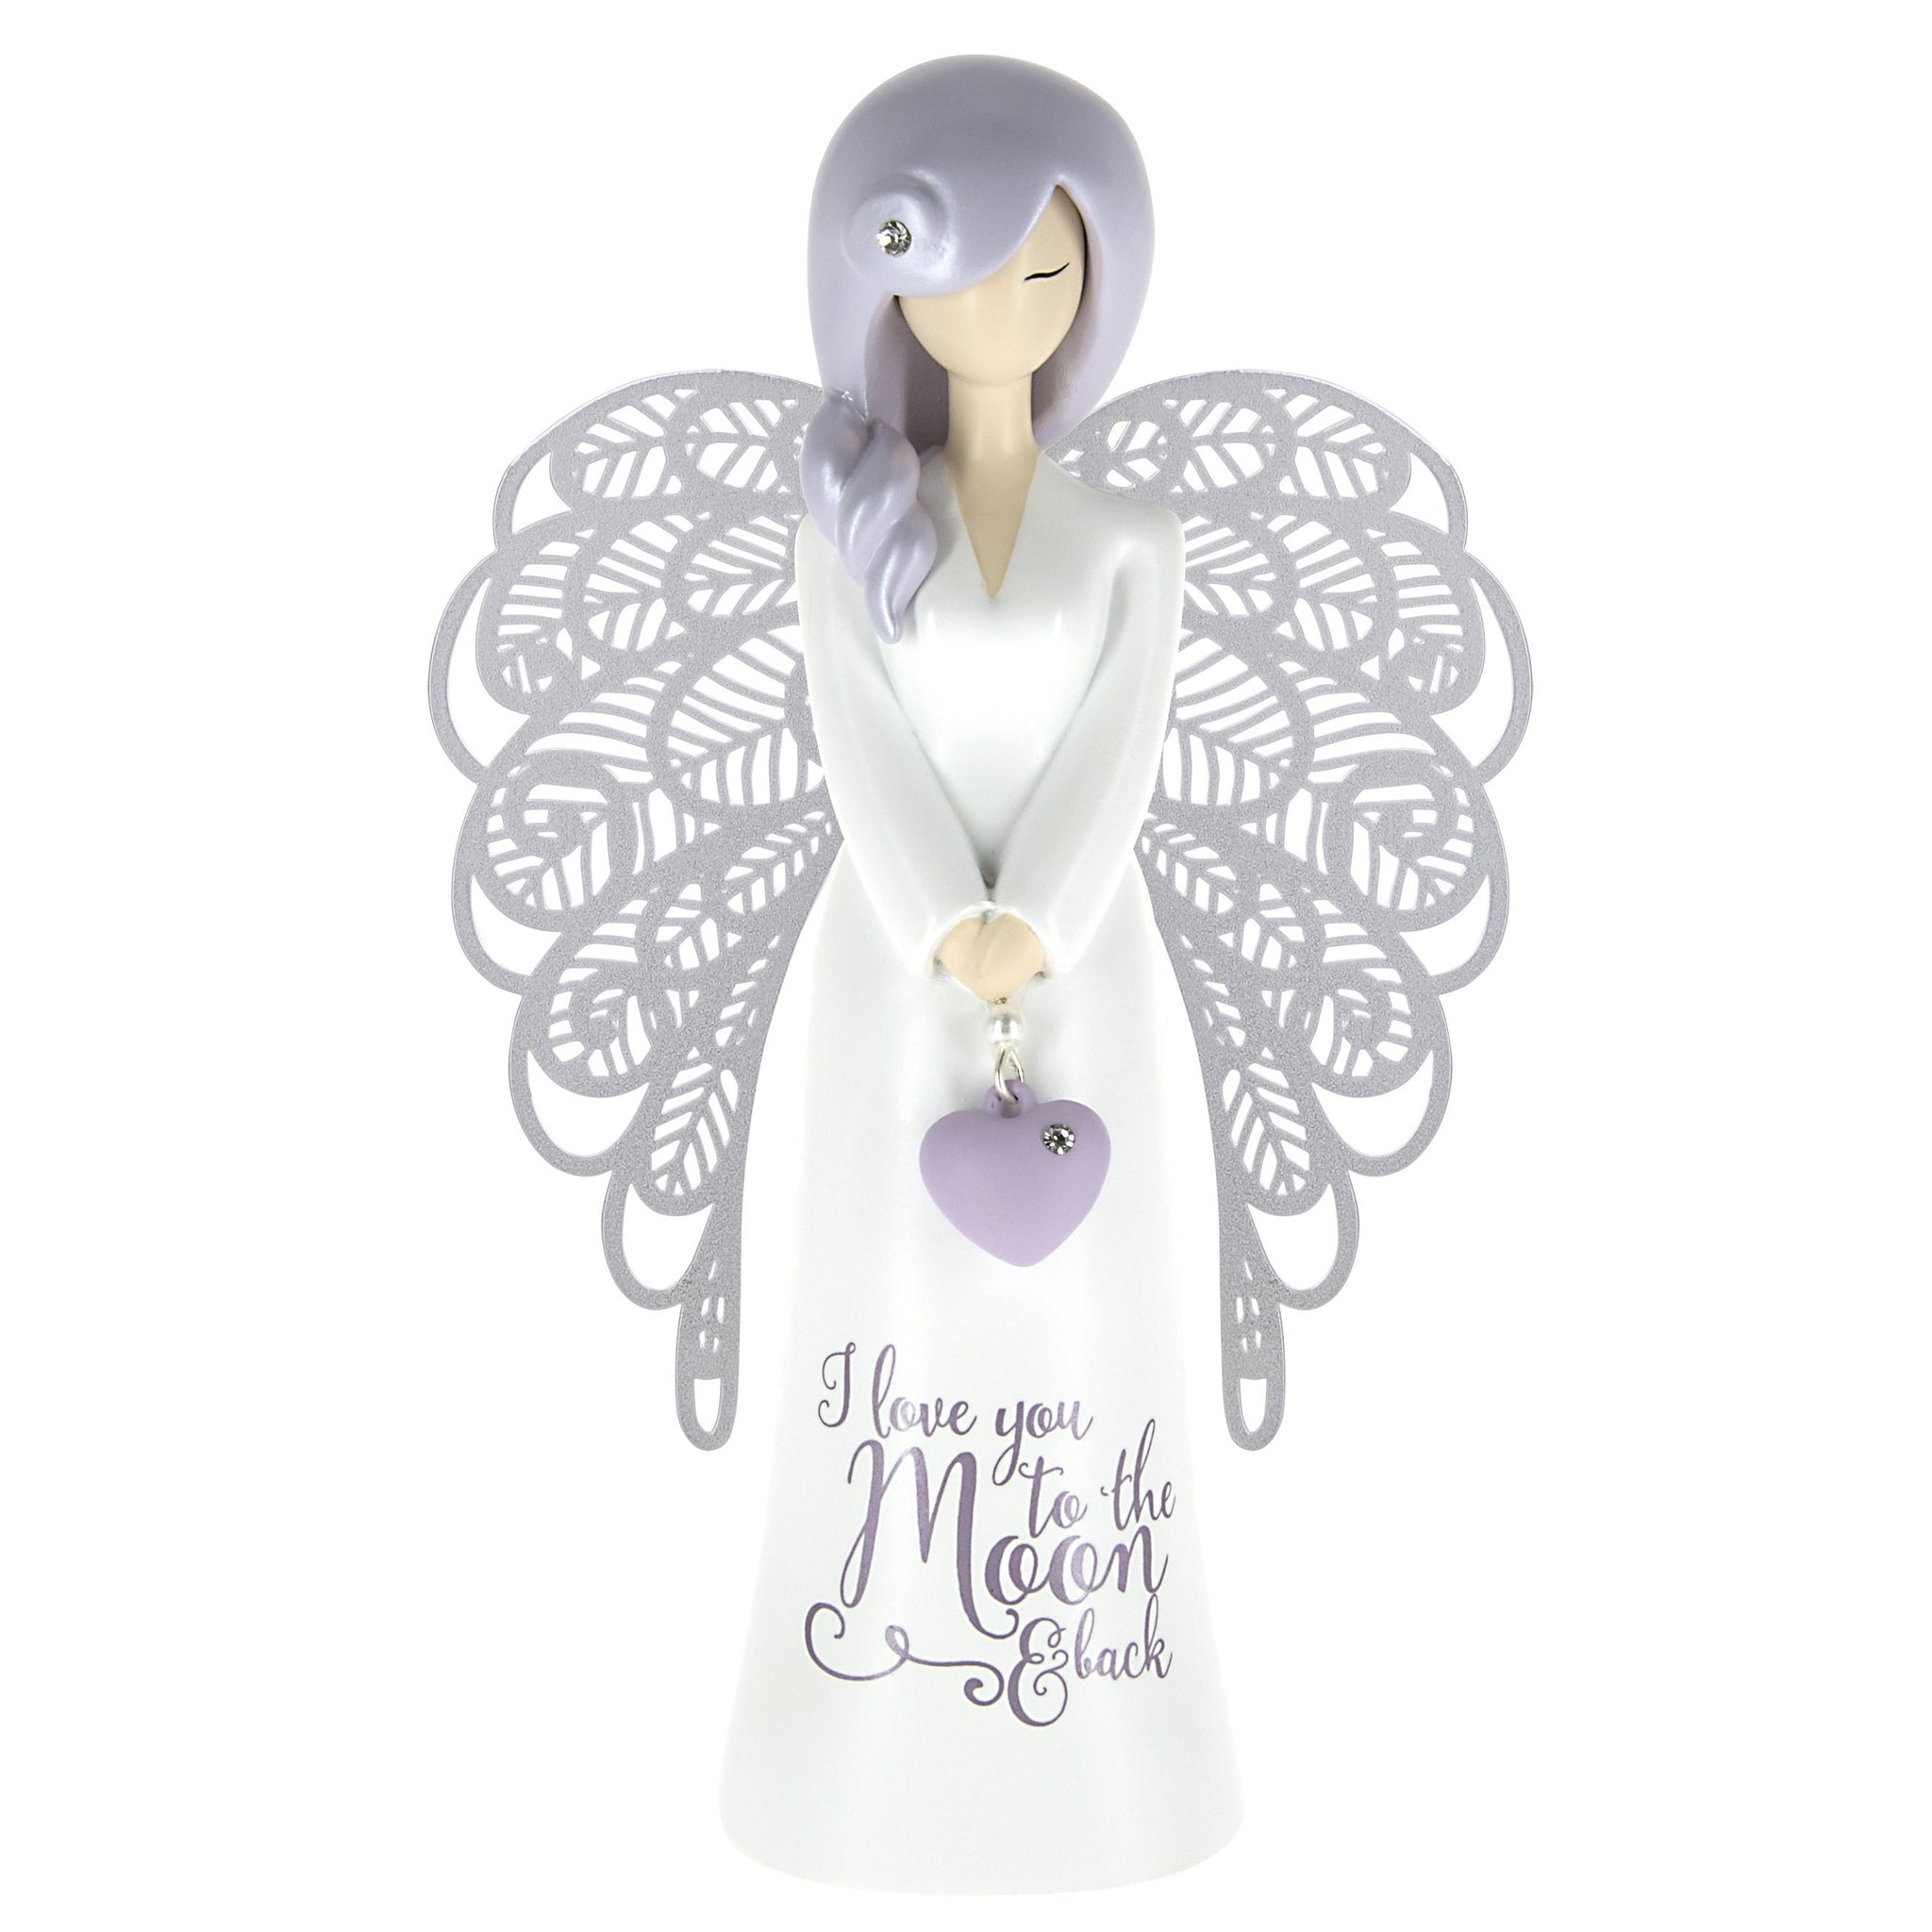 Angel figurine - I love you to the moon & back